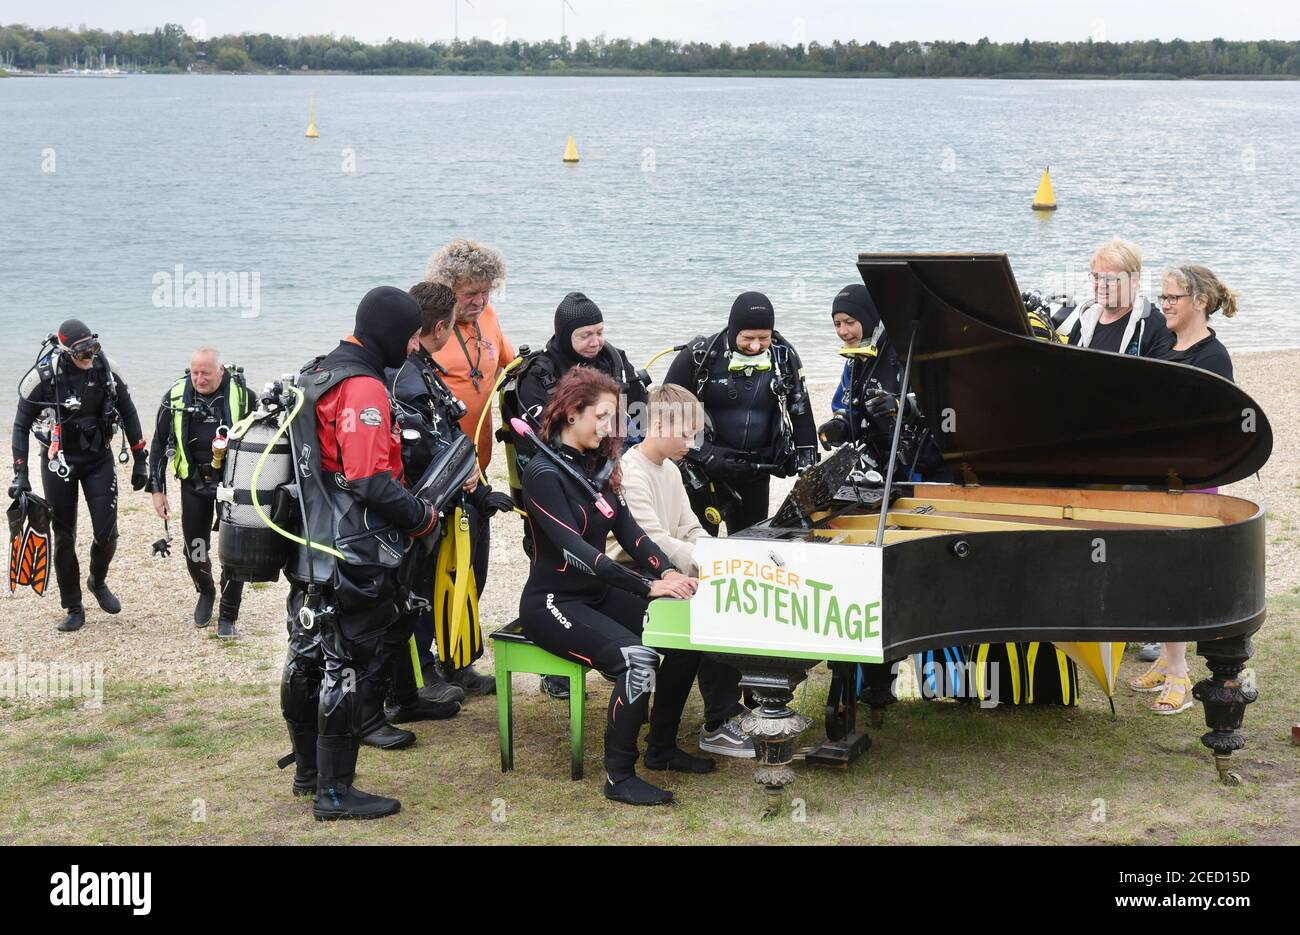 31 August 2020, Saxony, Leipzig: On the beach of the Kulkwitzer See in front of the diving school Delphin, the 15-year-old pianist Florian shows his group of sport divers from Ulm/Neu-Ulm (Baden-Württemberg/Bavaria) and diver Selina Schwarz from Leipzig (front right) different keystrokes on an old grand piano from 1880 which is placed outside. During a festival lasting several days, the 4th Leipzig Keyboard Days (until 13.09.20), a total of ten pianos and grand pianos sponsored by institutions and companies will be on display at various locations in the large new building area. The musical ins Stock Photo